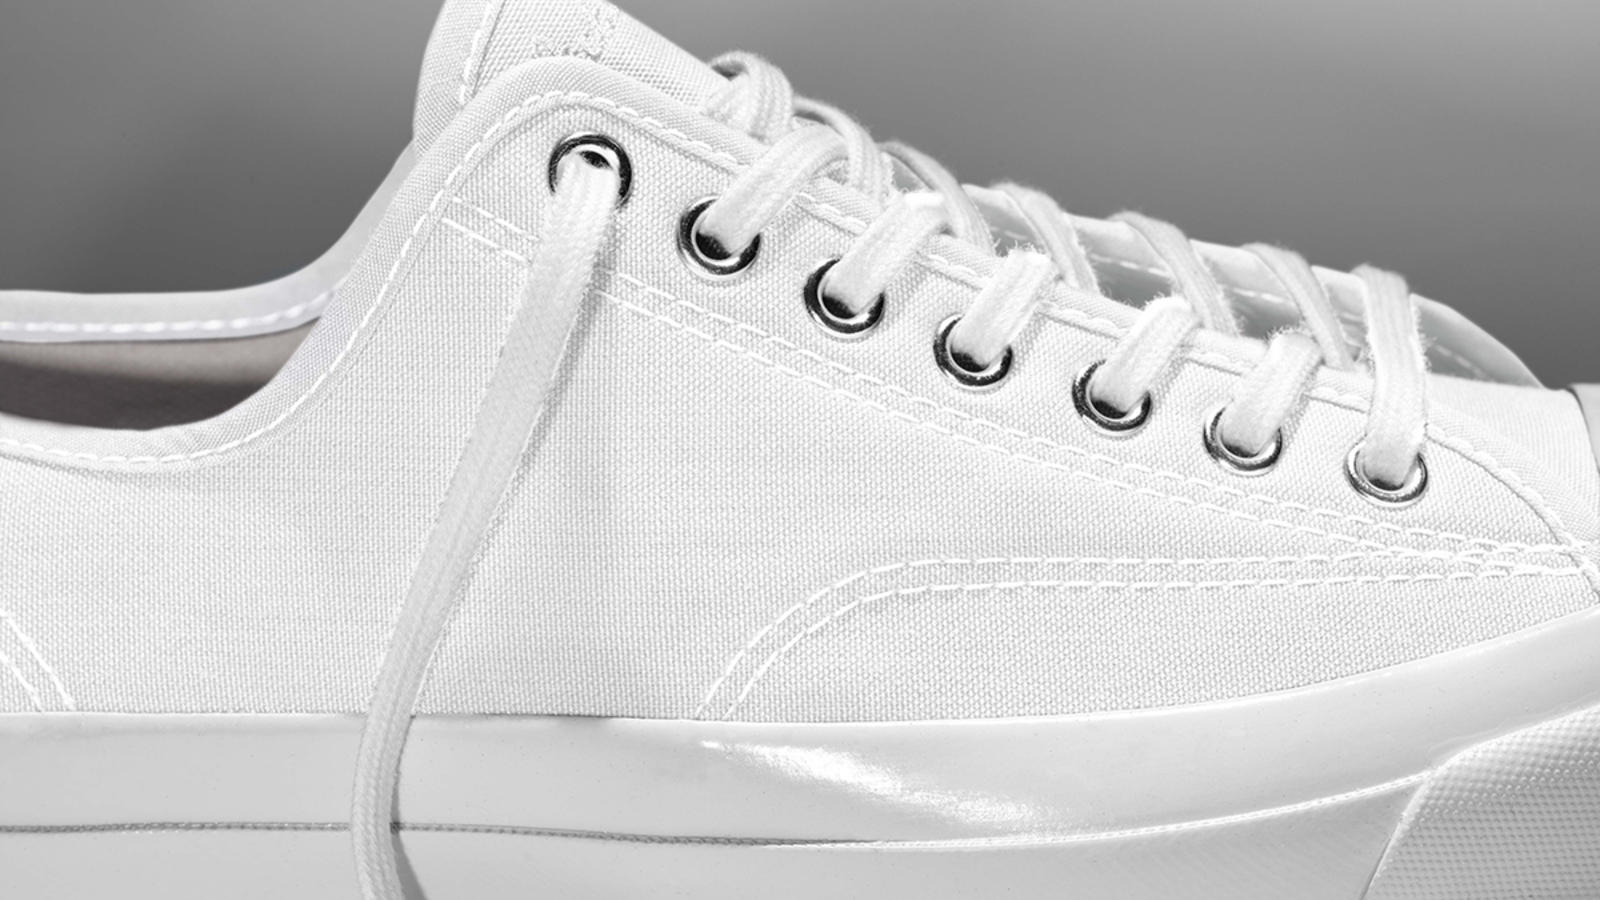 Converse sneakers: brand history and advantages